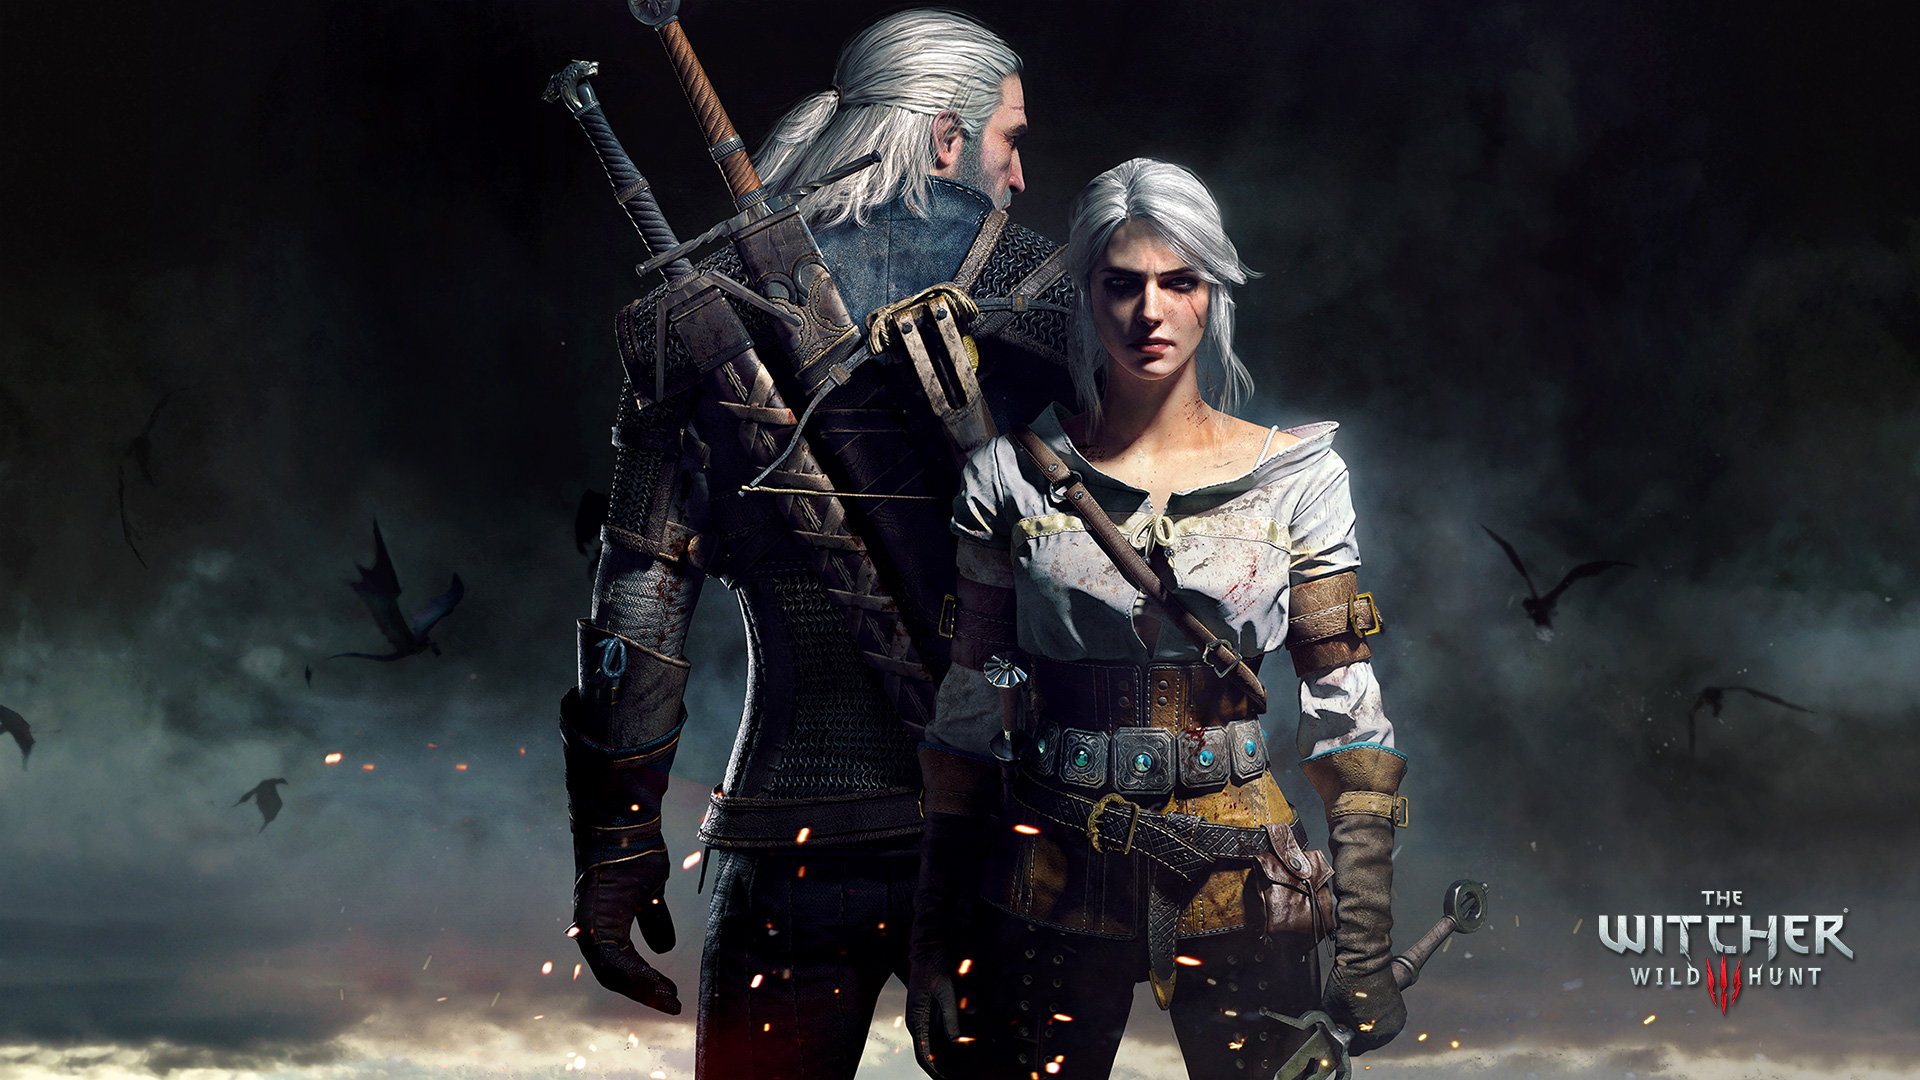 witcher3_en_wallpaper_wallpaper_10_1920x1080_1433327726 (1)